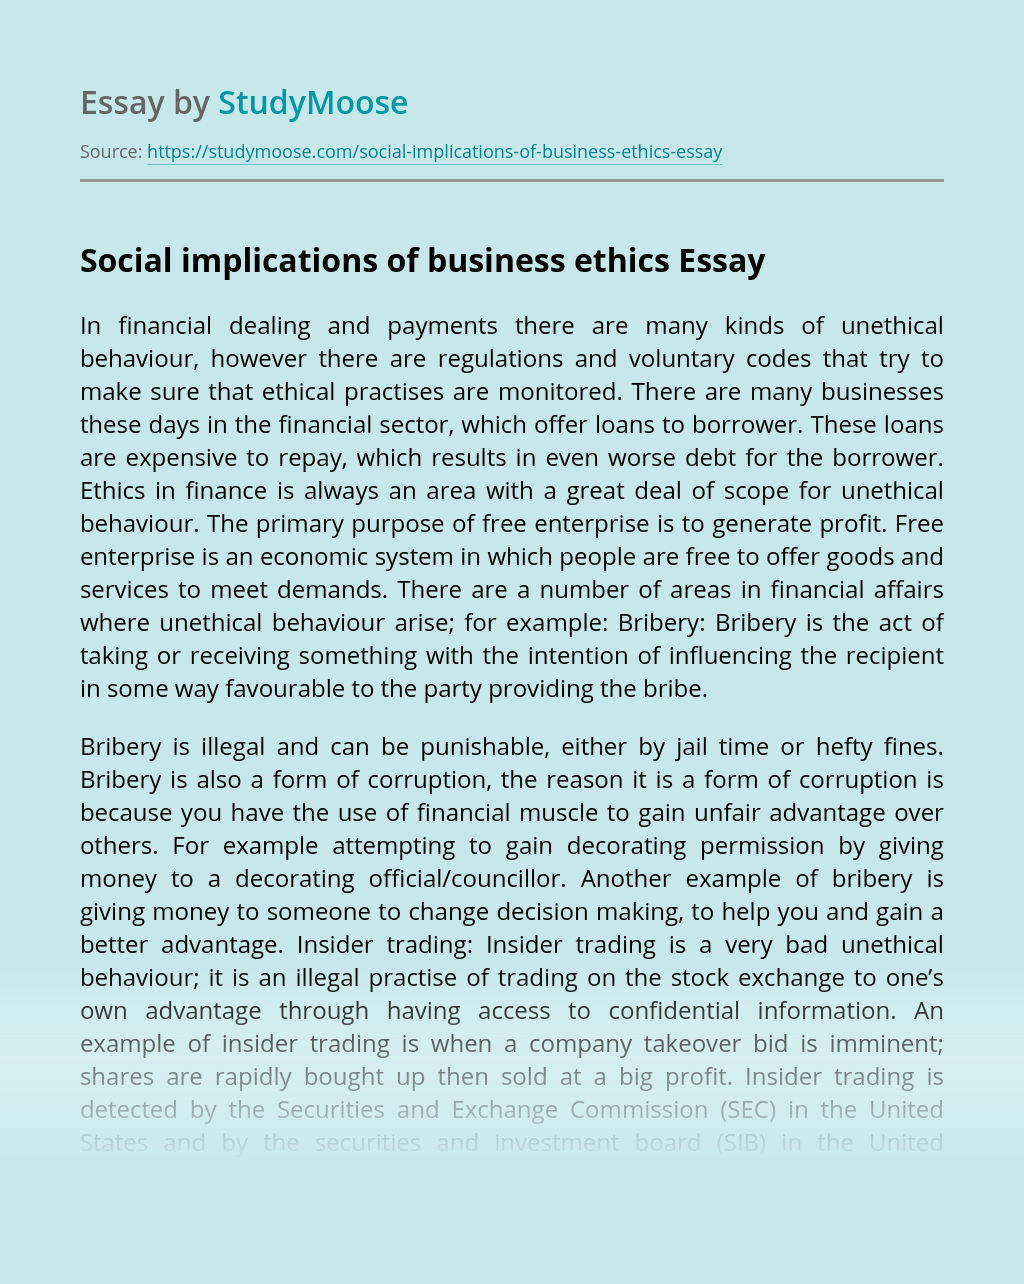 Social implications of business ethics